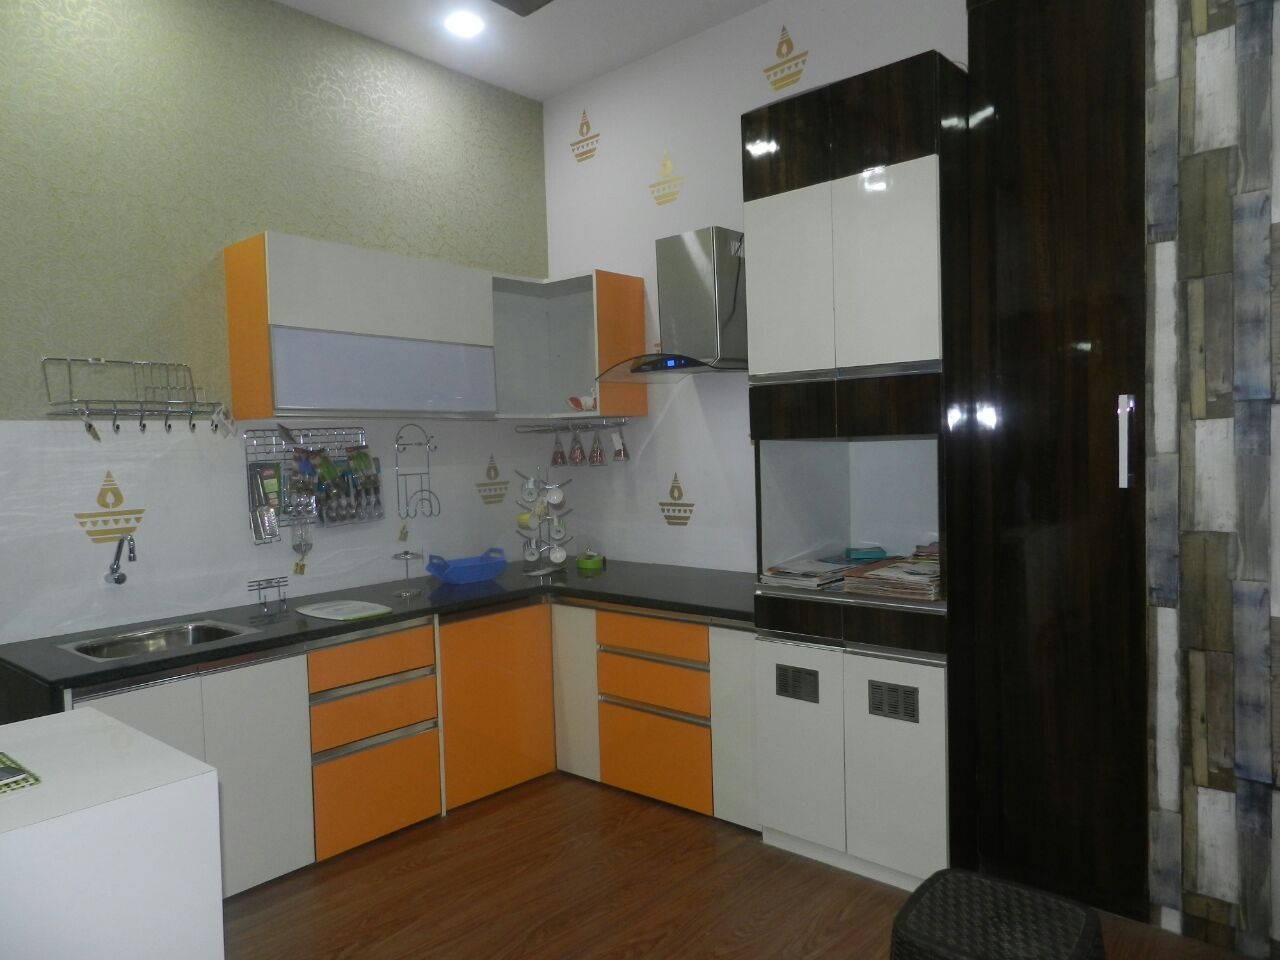 ALL TYPE OF INTERIOR DESIGNER IN HAZARIBAGH, KITCHEN DECOR